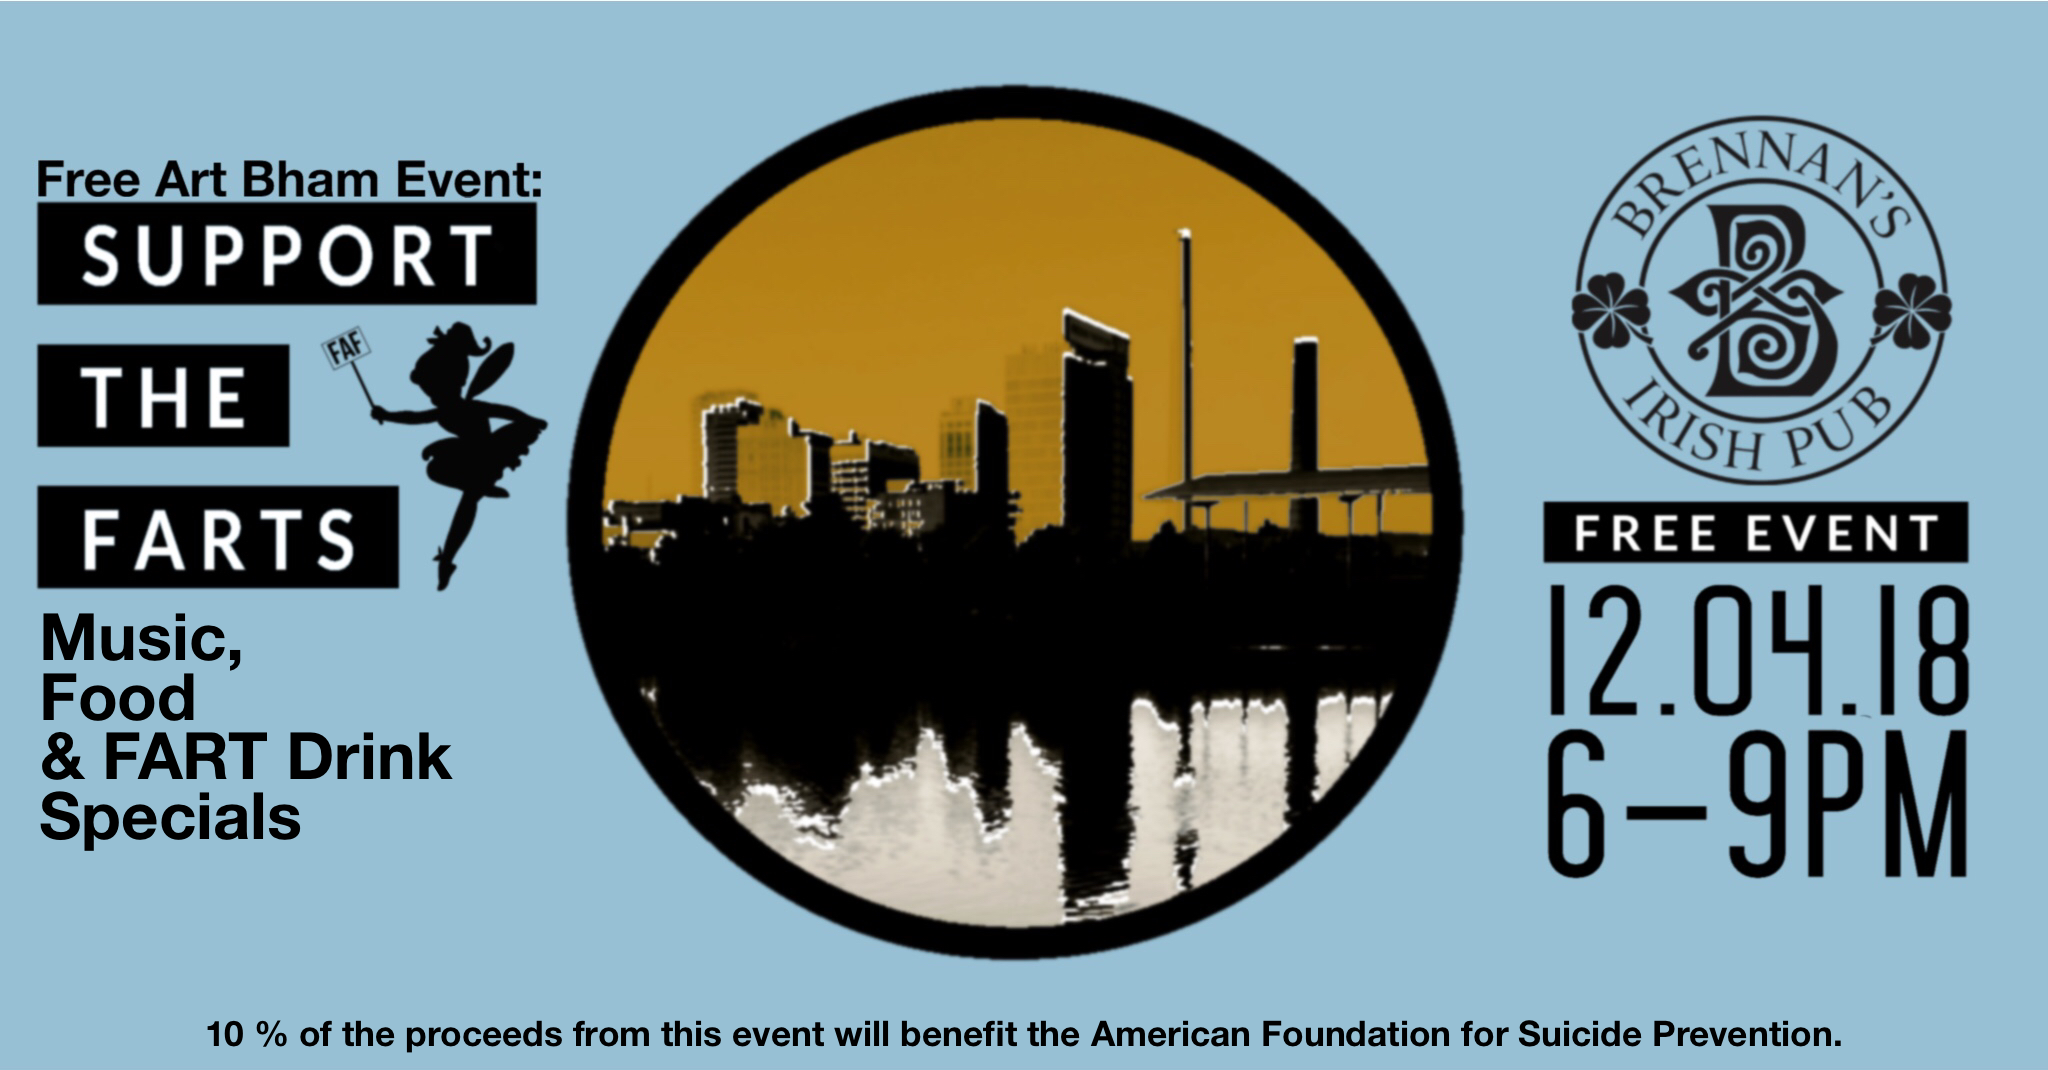 Support the FARTS A FREE @RT BHAM EVENT - INNOVATION DEPOT - 11.13.18 6-8 PM